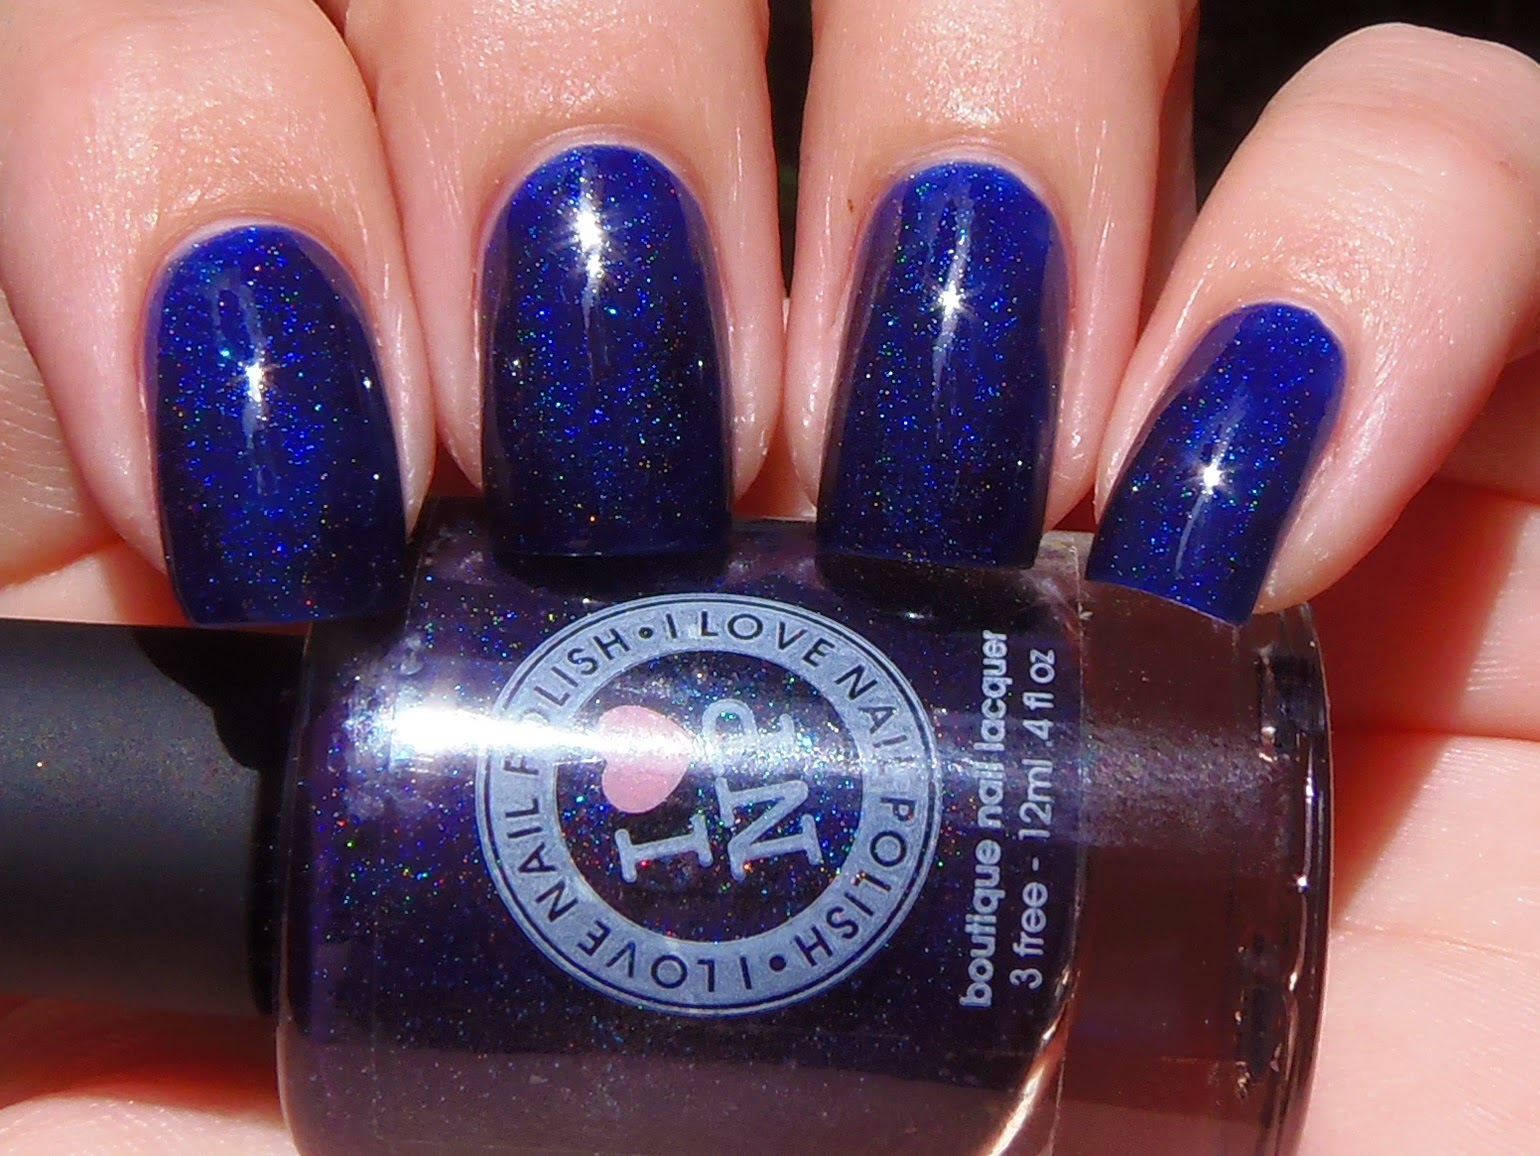 Sparkly Vernis: I Love Nail Polish Royal Rainbow is a navy blue ...